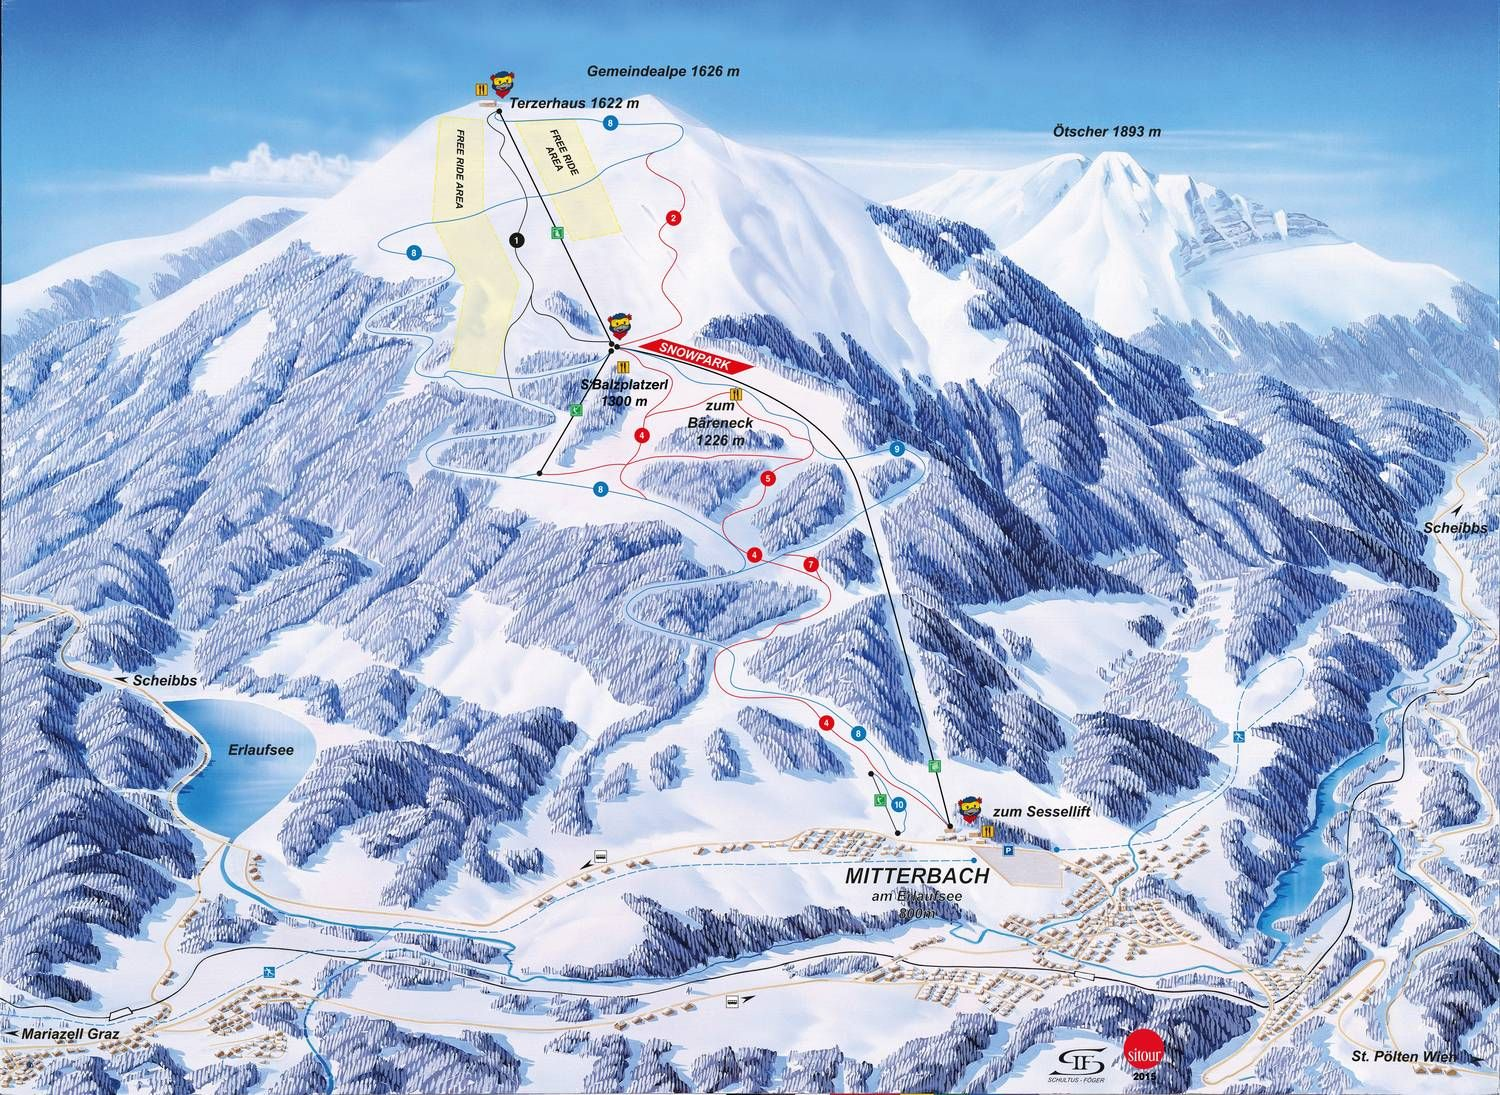 Gemeindealpe Piste / Trail Map